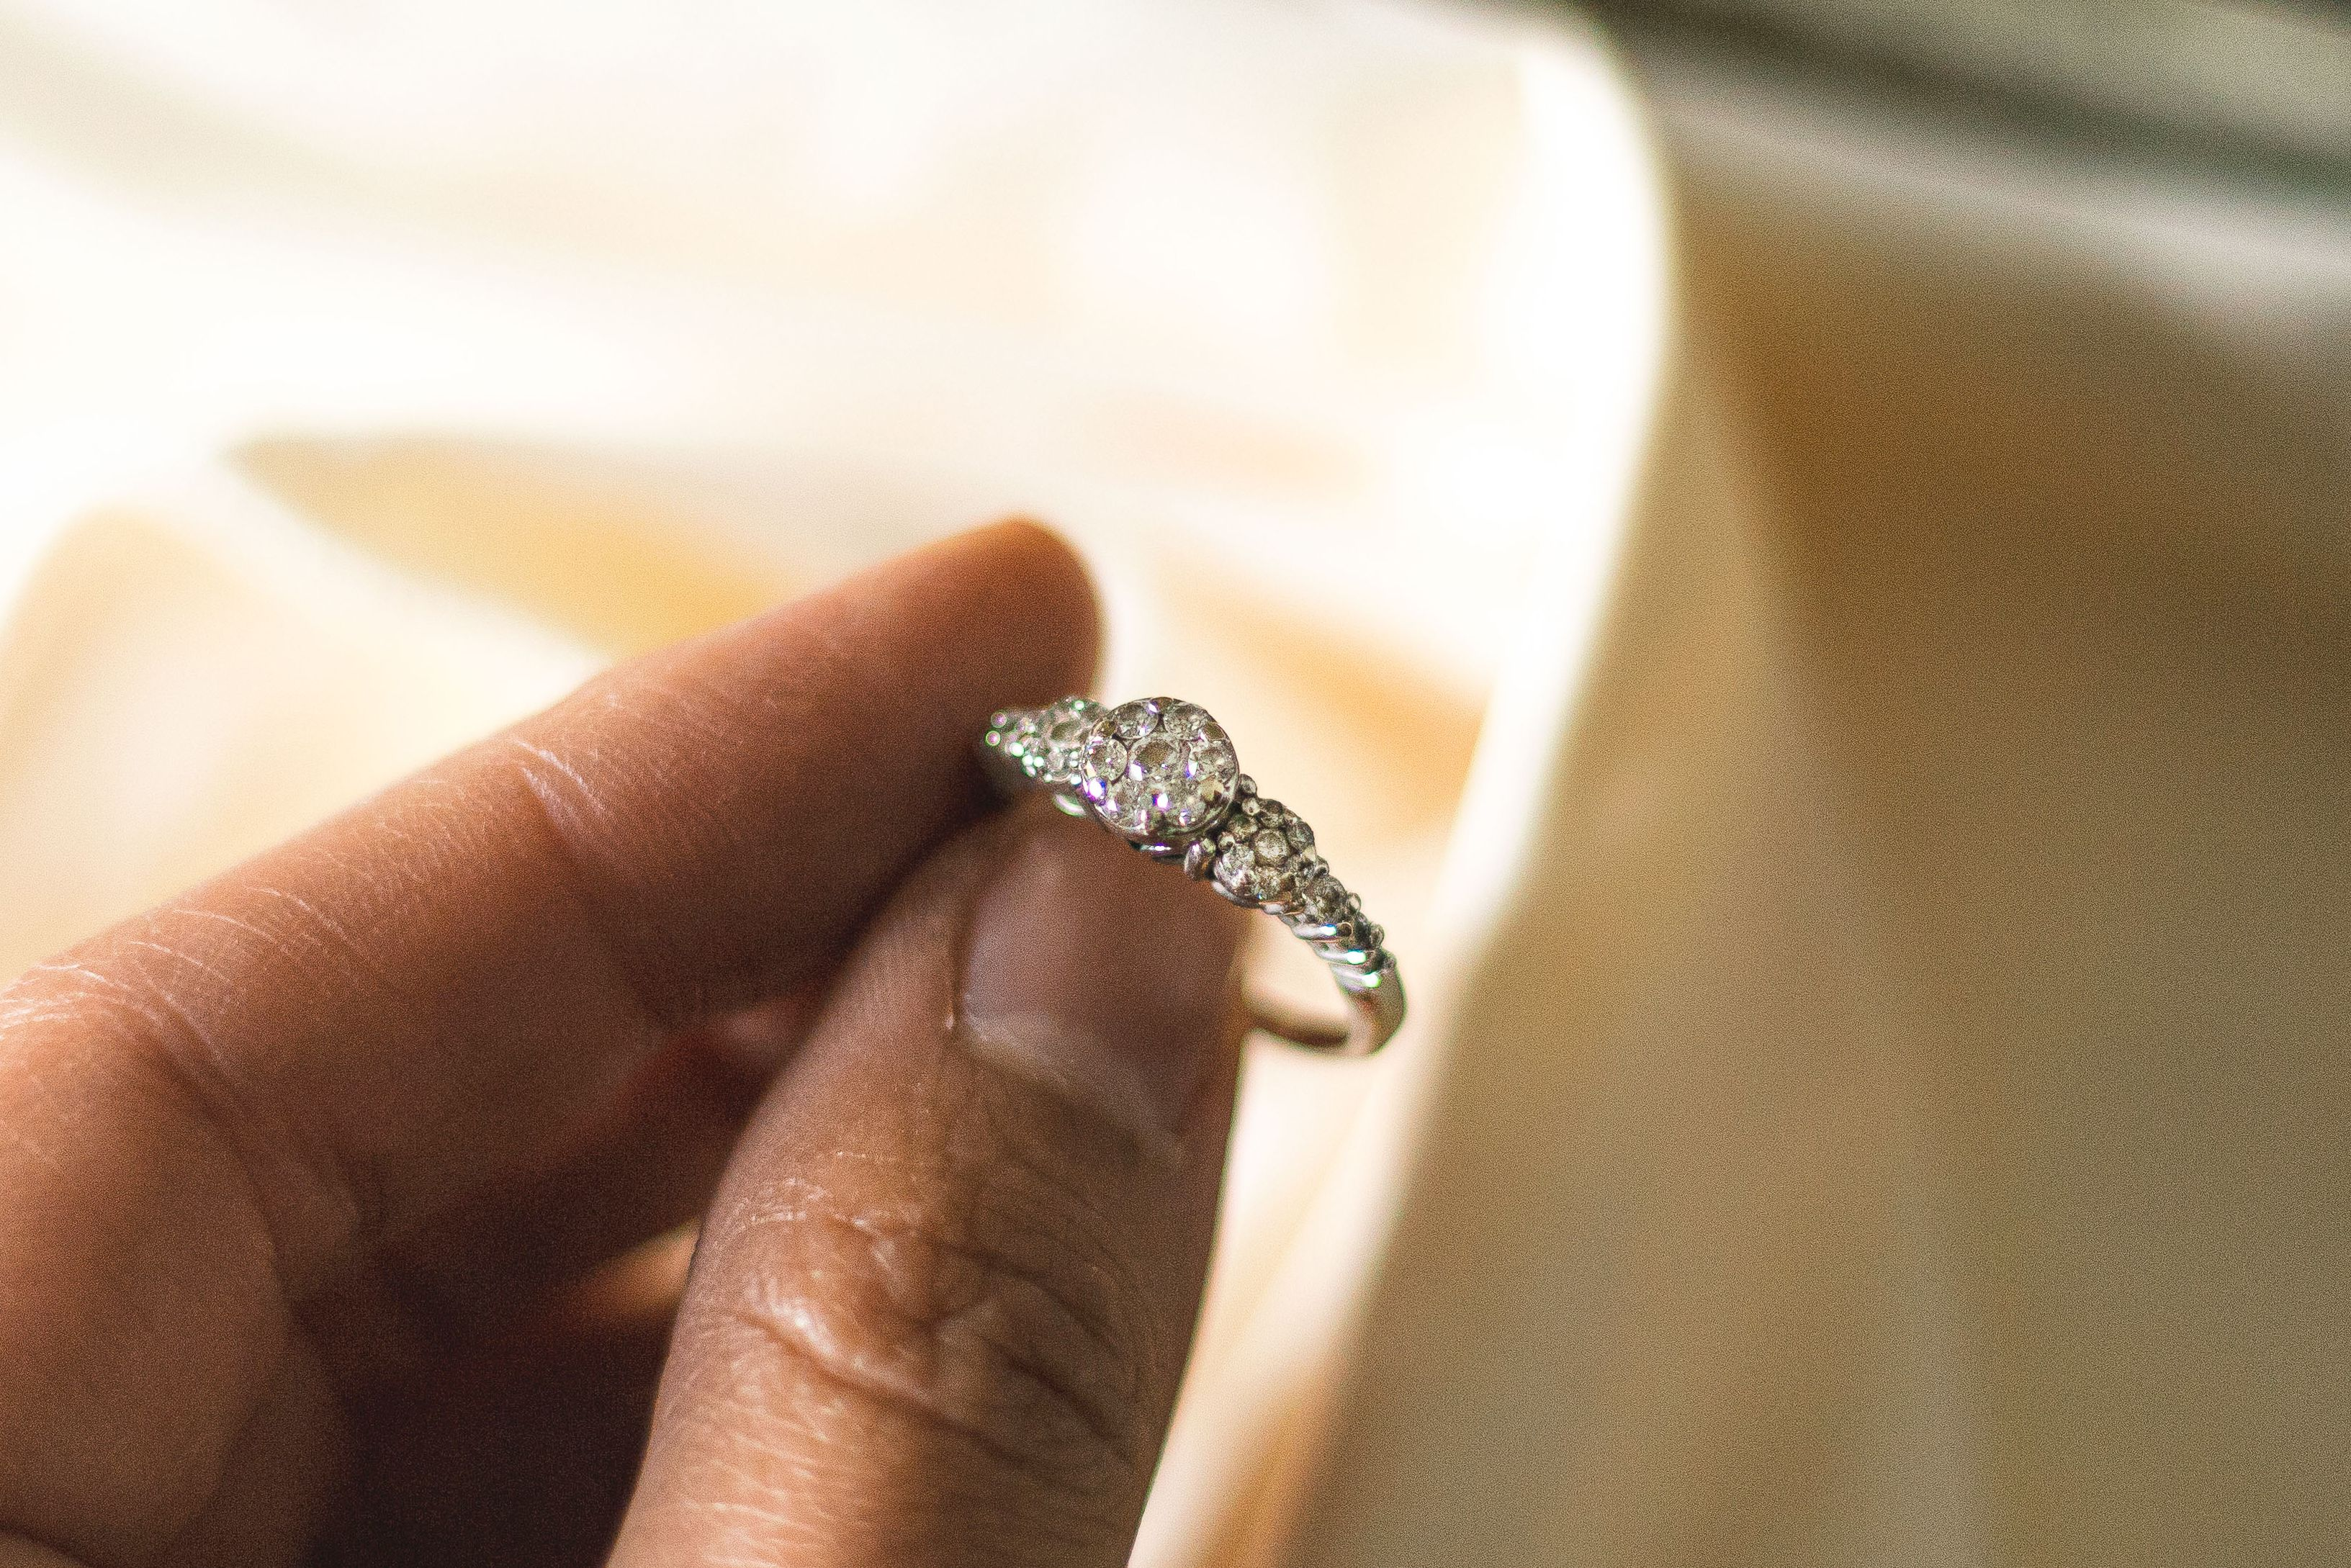 When To Clean Diamond Rings And Other Fine Jewelry